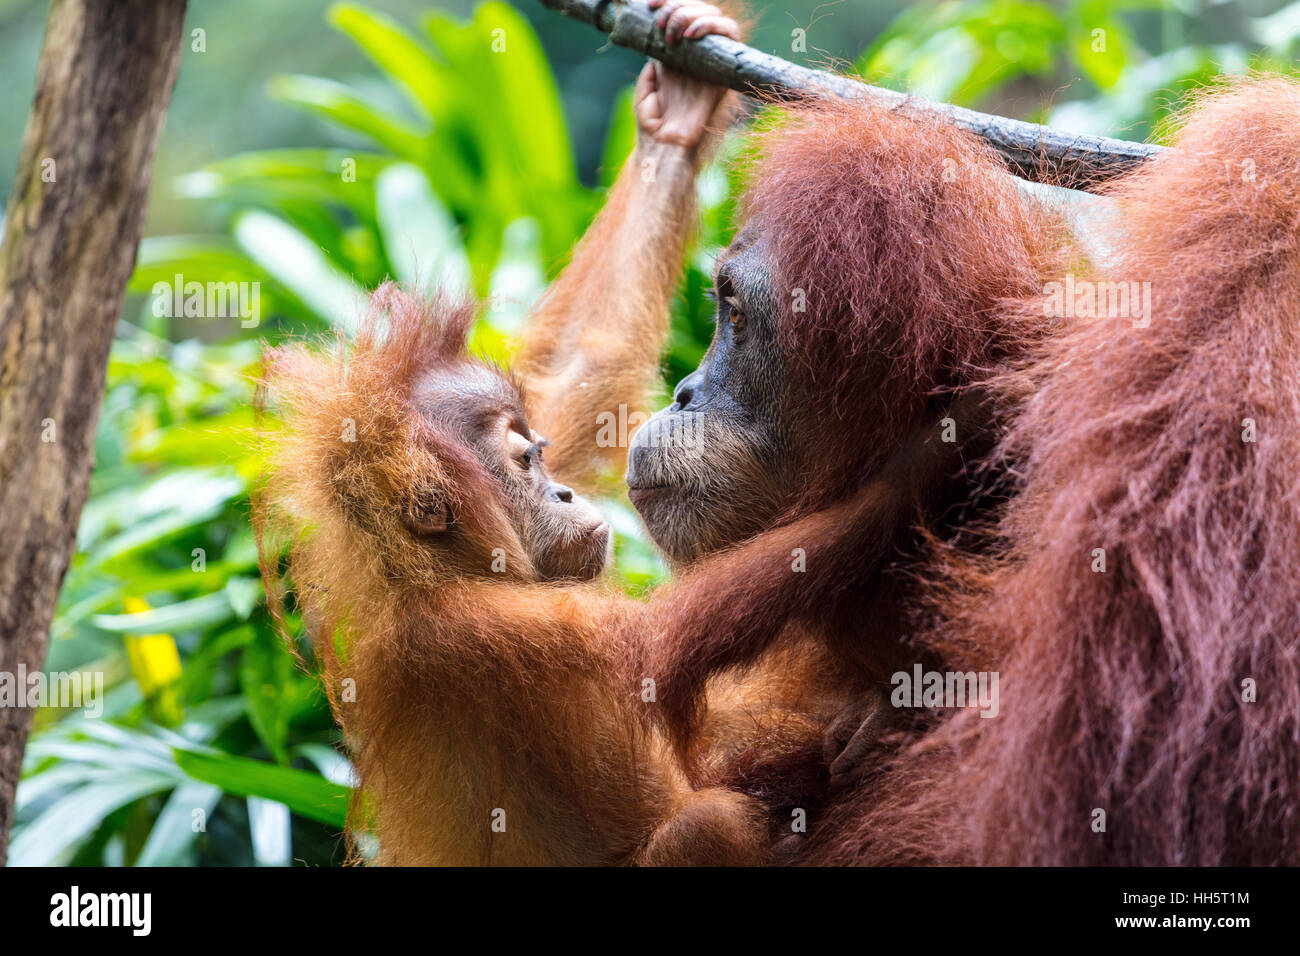 Mutter mit Baby Orang-Utan Stockbild